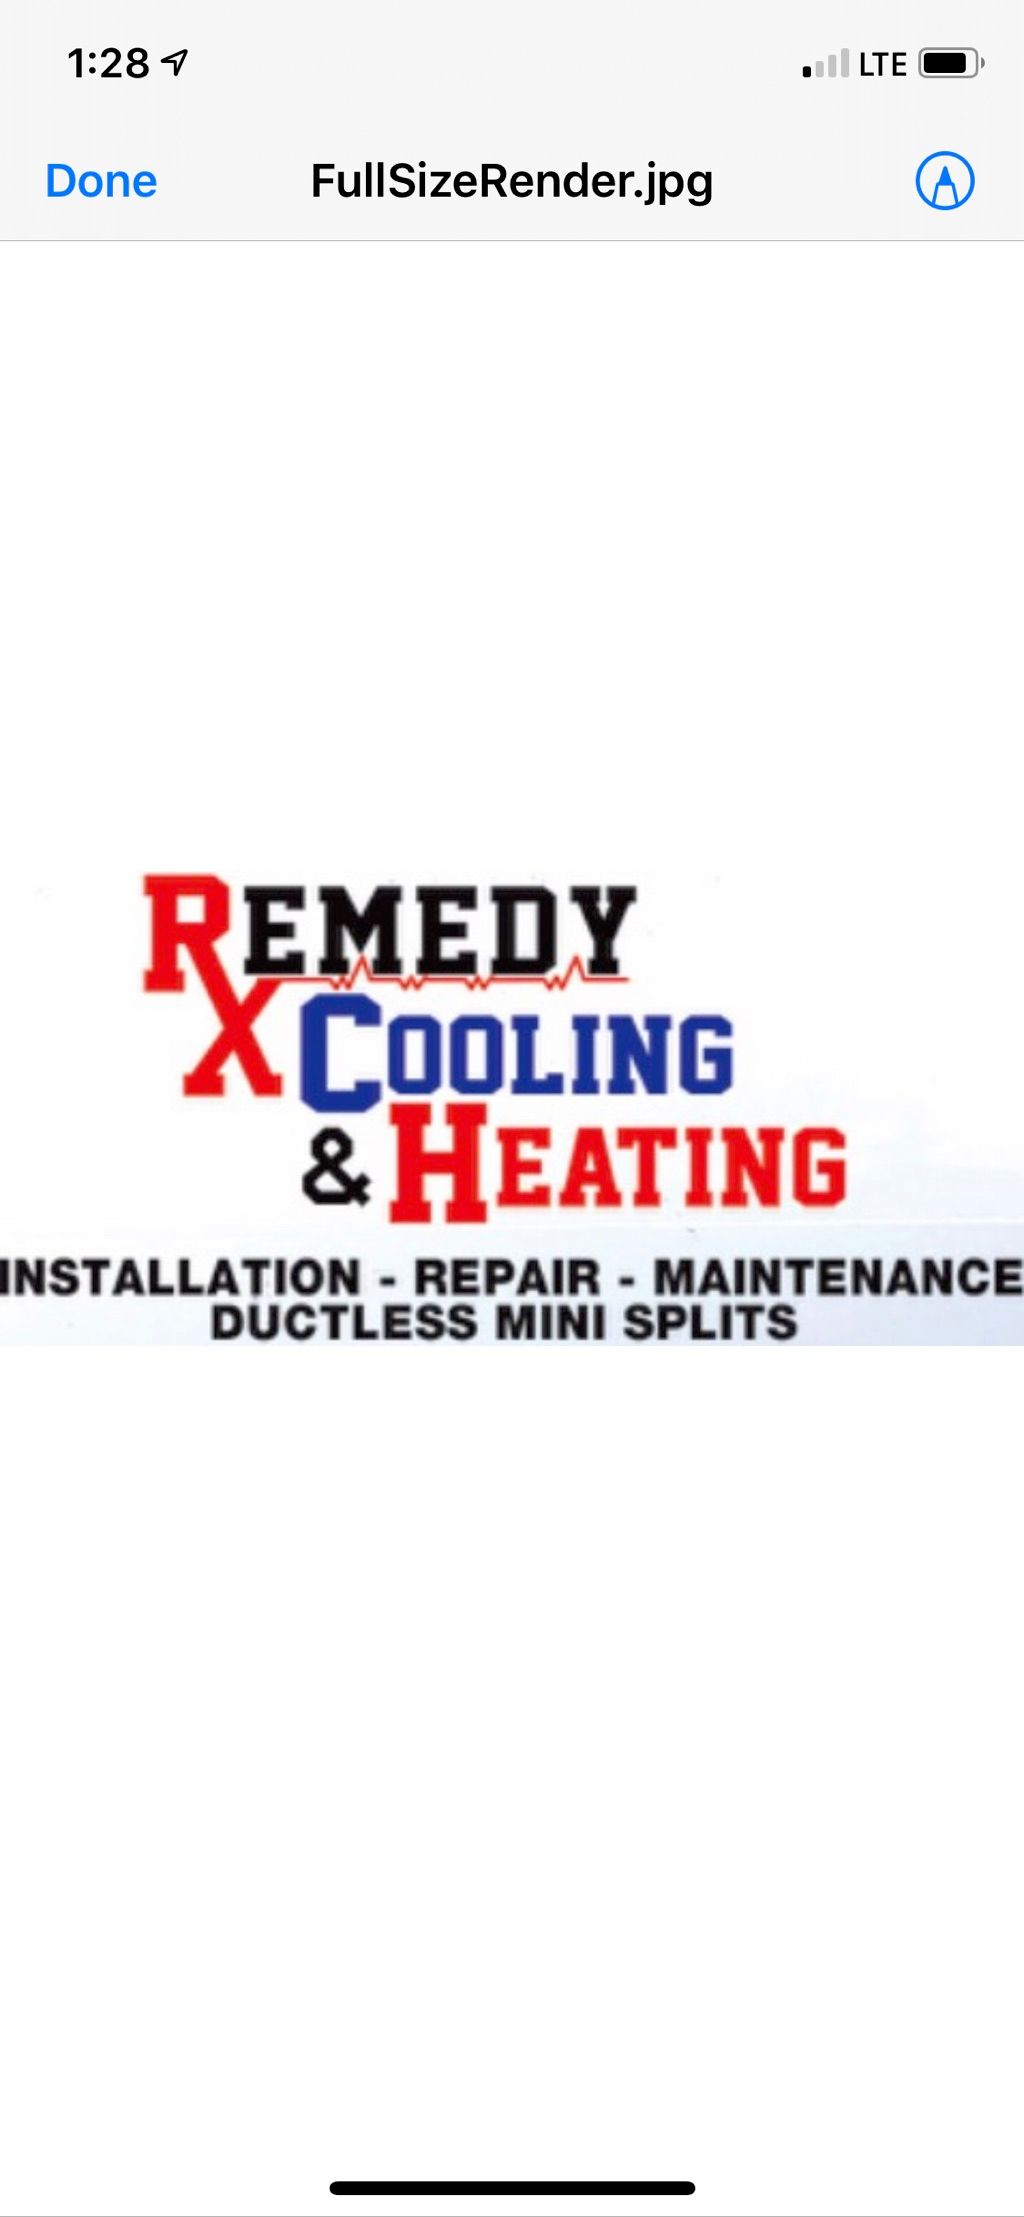 Remedy cooling and heating